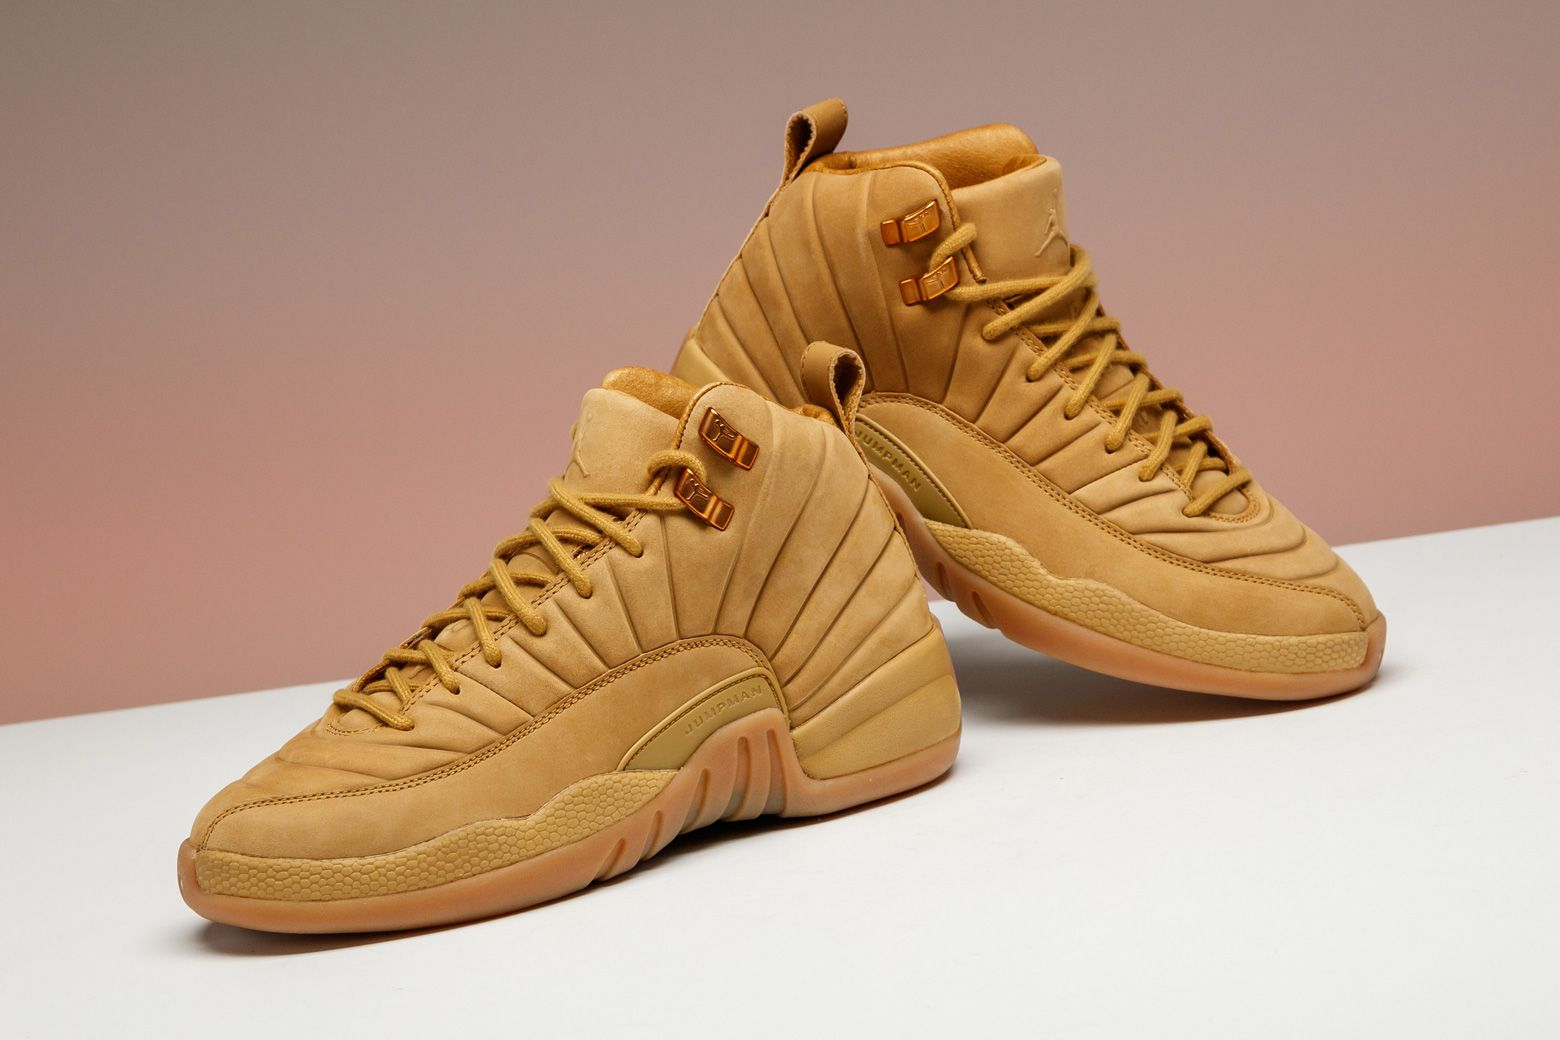 1393e0a9722f41 This grade school version of the new PSNY x Air Jordan 12 Retro